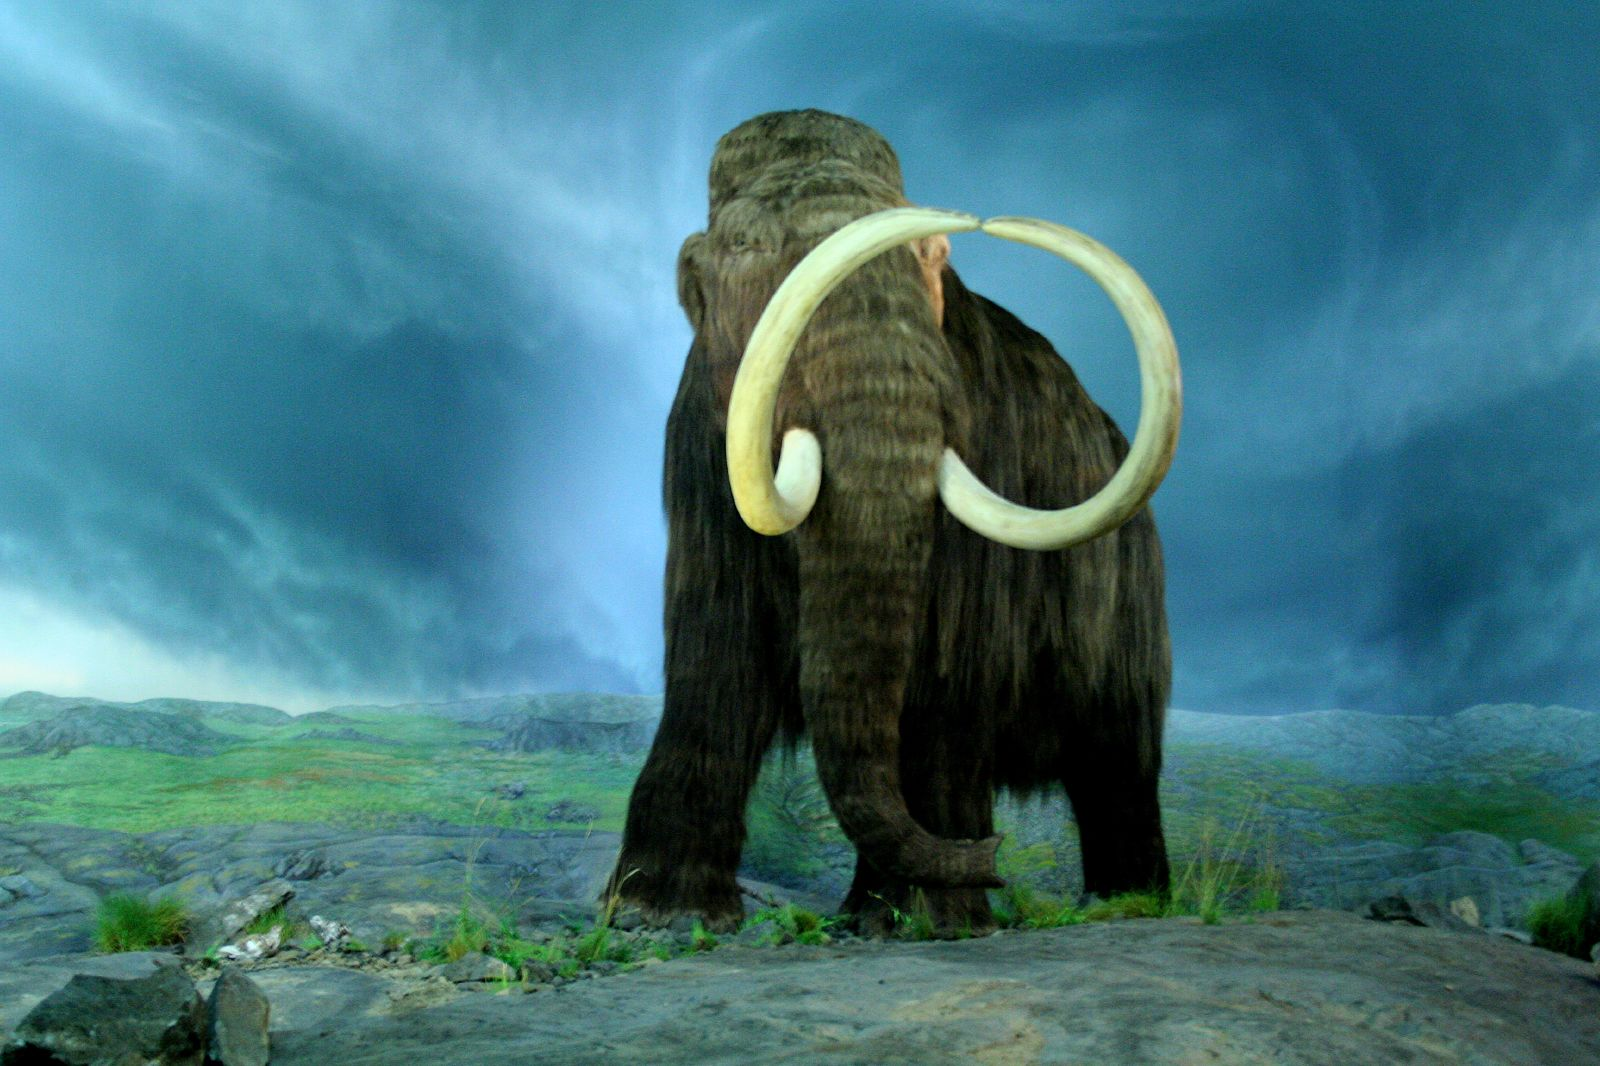 FileWooly Mammoth RBCjpg Wikimedia Commons : WoolyMammoth RBC from commons.wikimedia.org size 1600 x 1066 jpeg 240kB